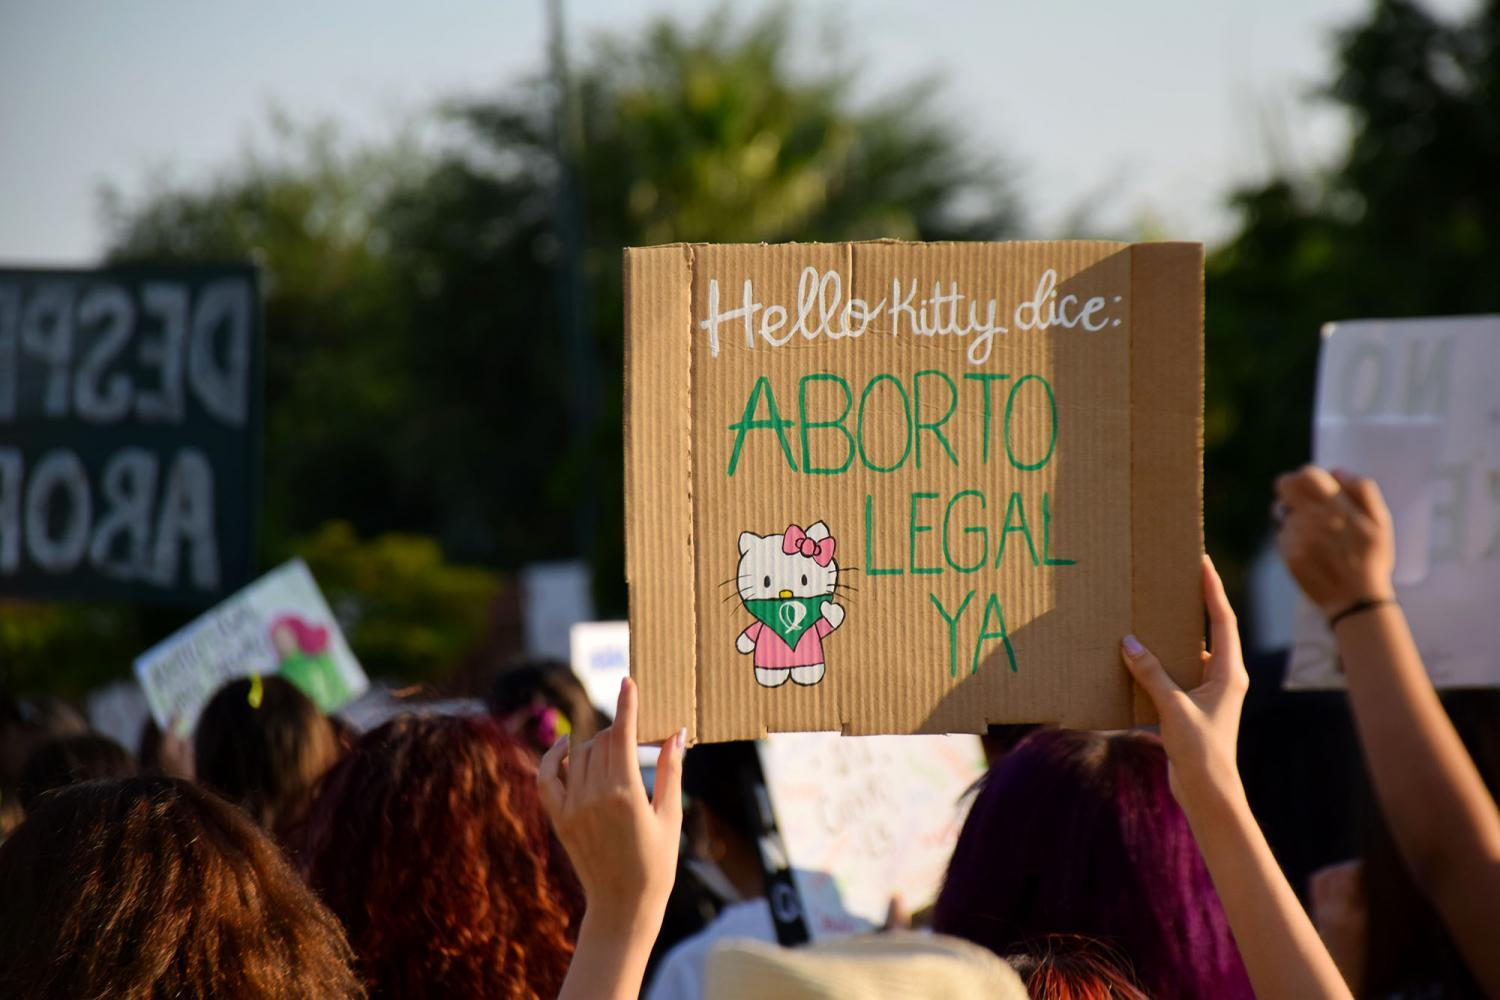 Legal abortion now sign